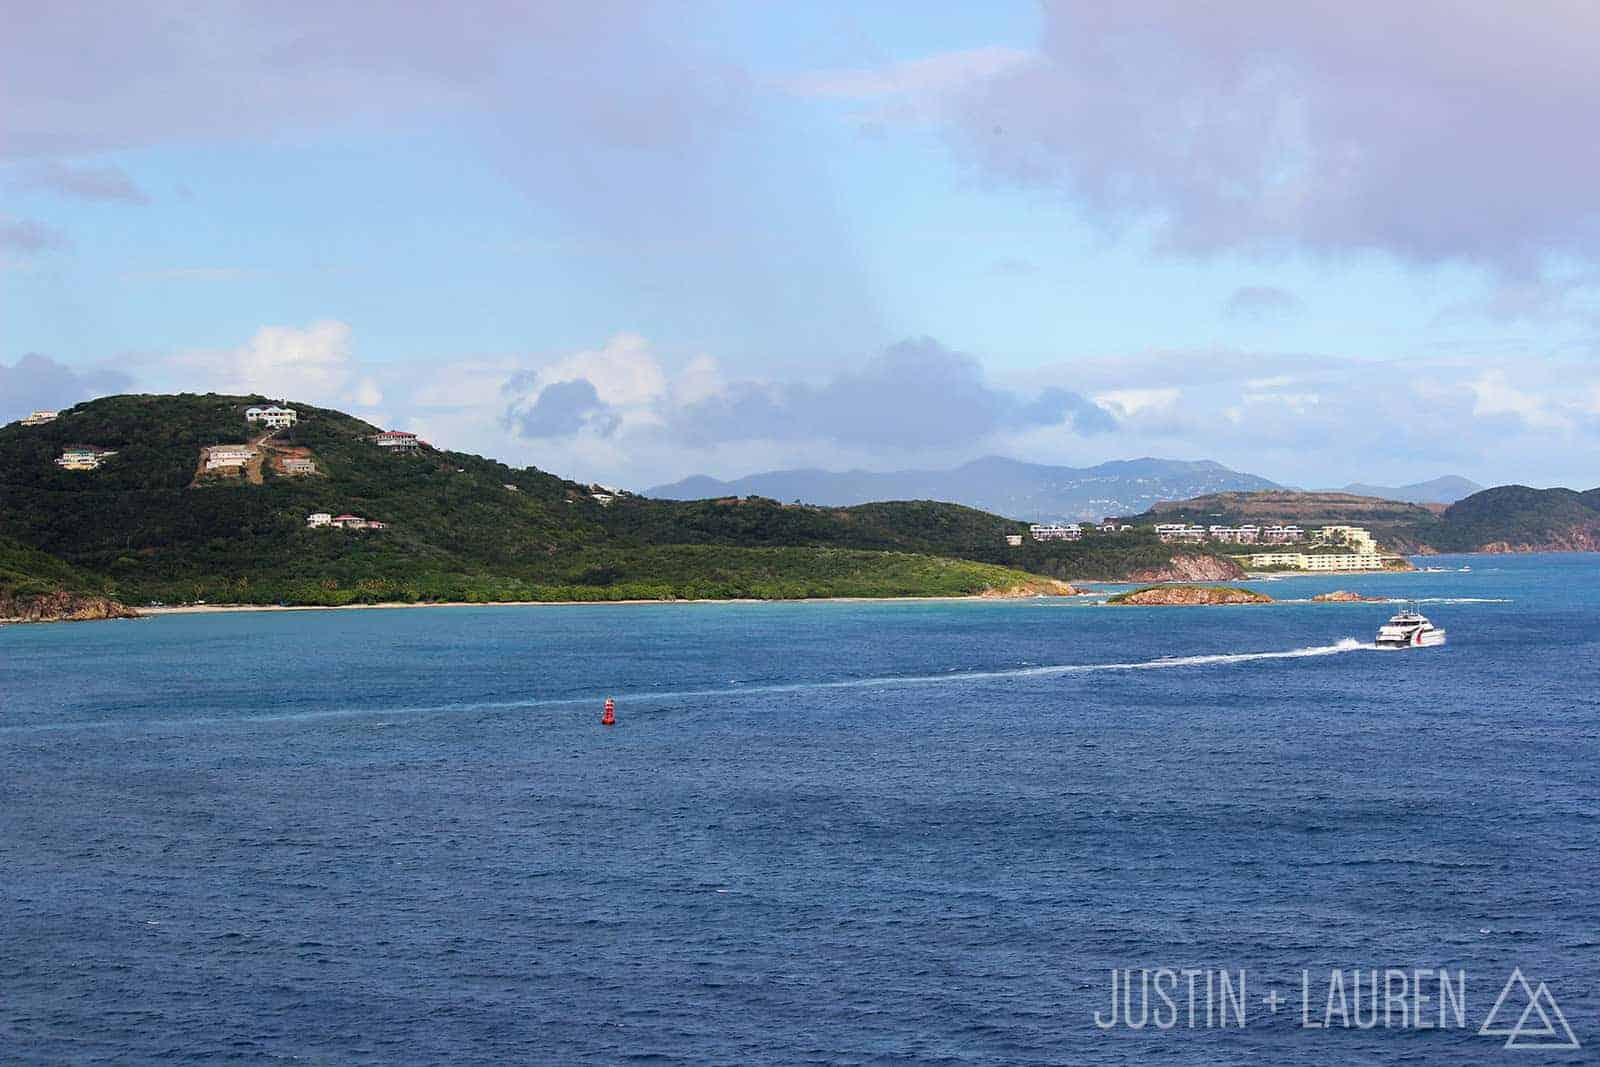 24 Stunning Photos of St. Thomas from the Ocean